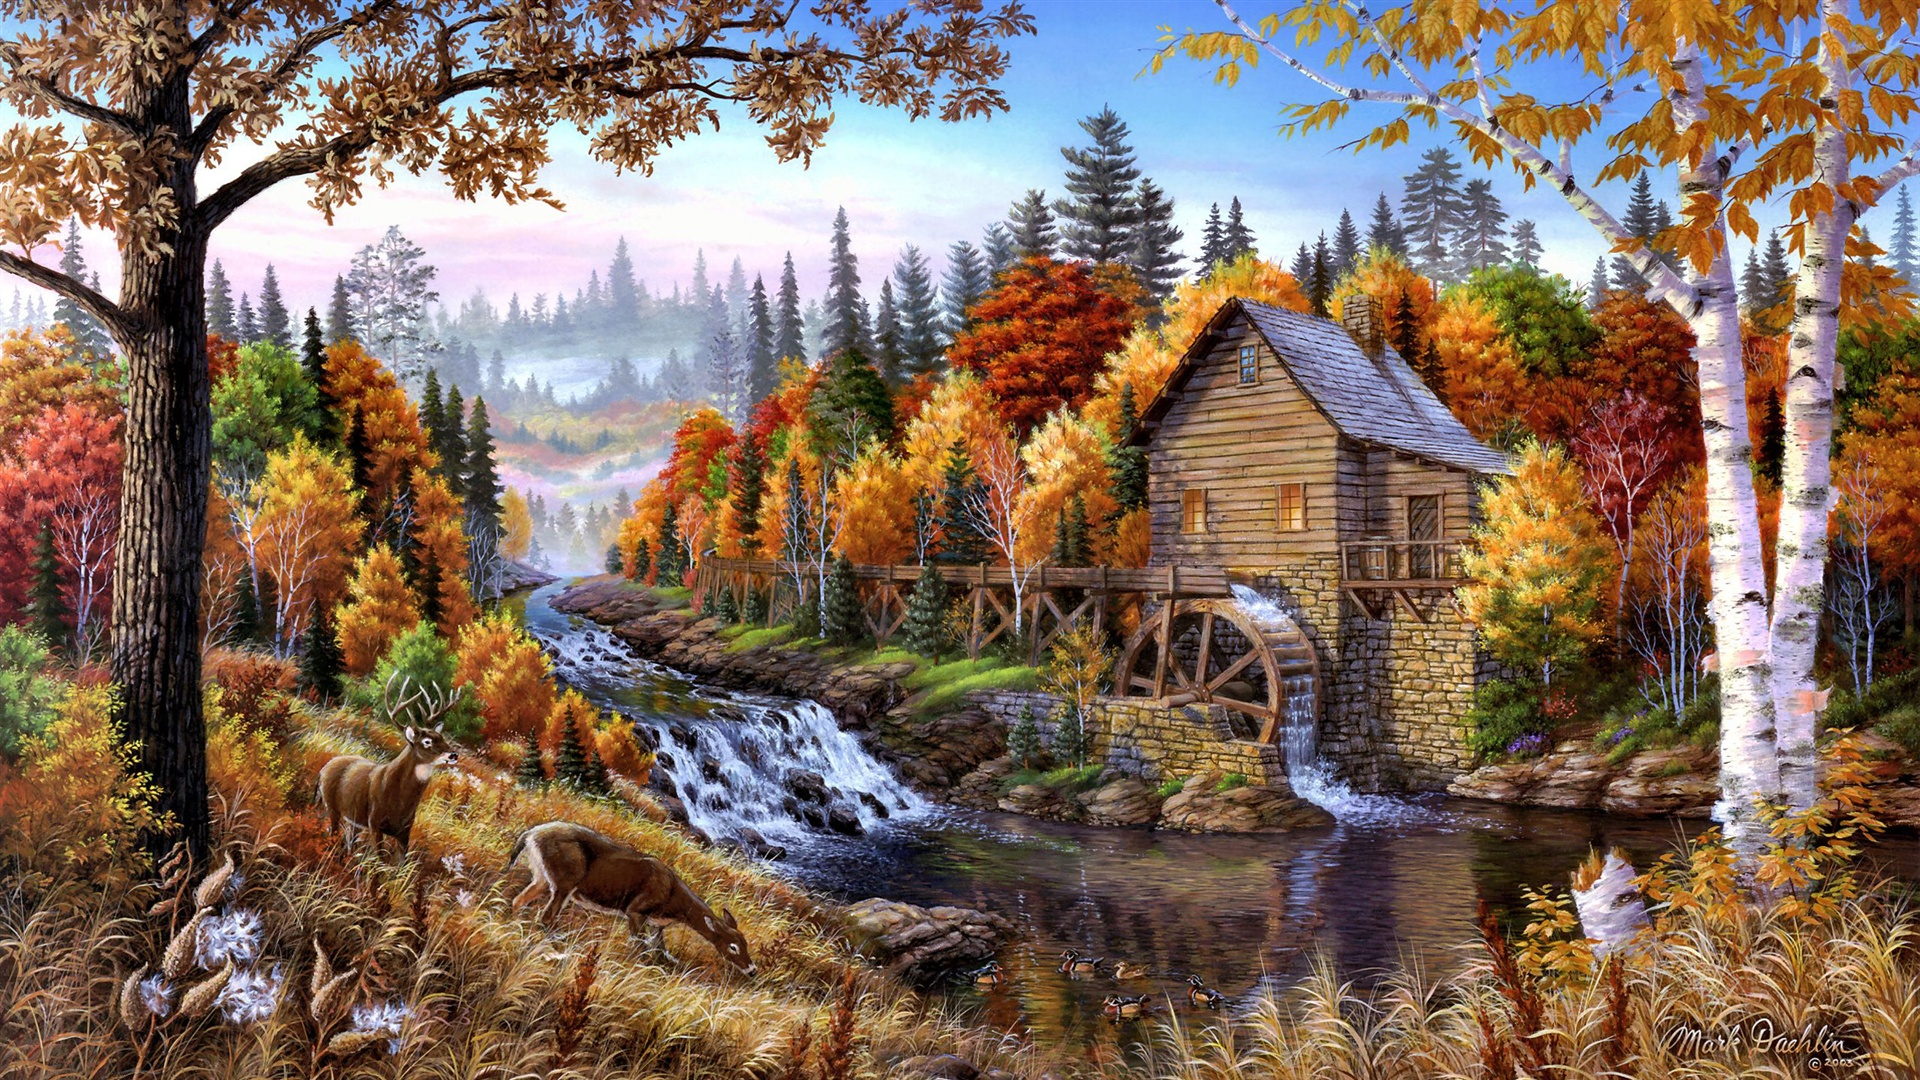 Iphone 4s White Wallpaper Wallpaper Home In The Forest Oil Painting 2560x1440 Qhd